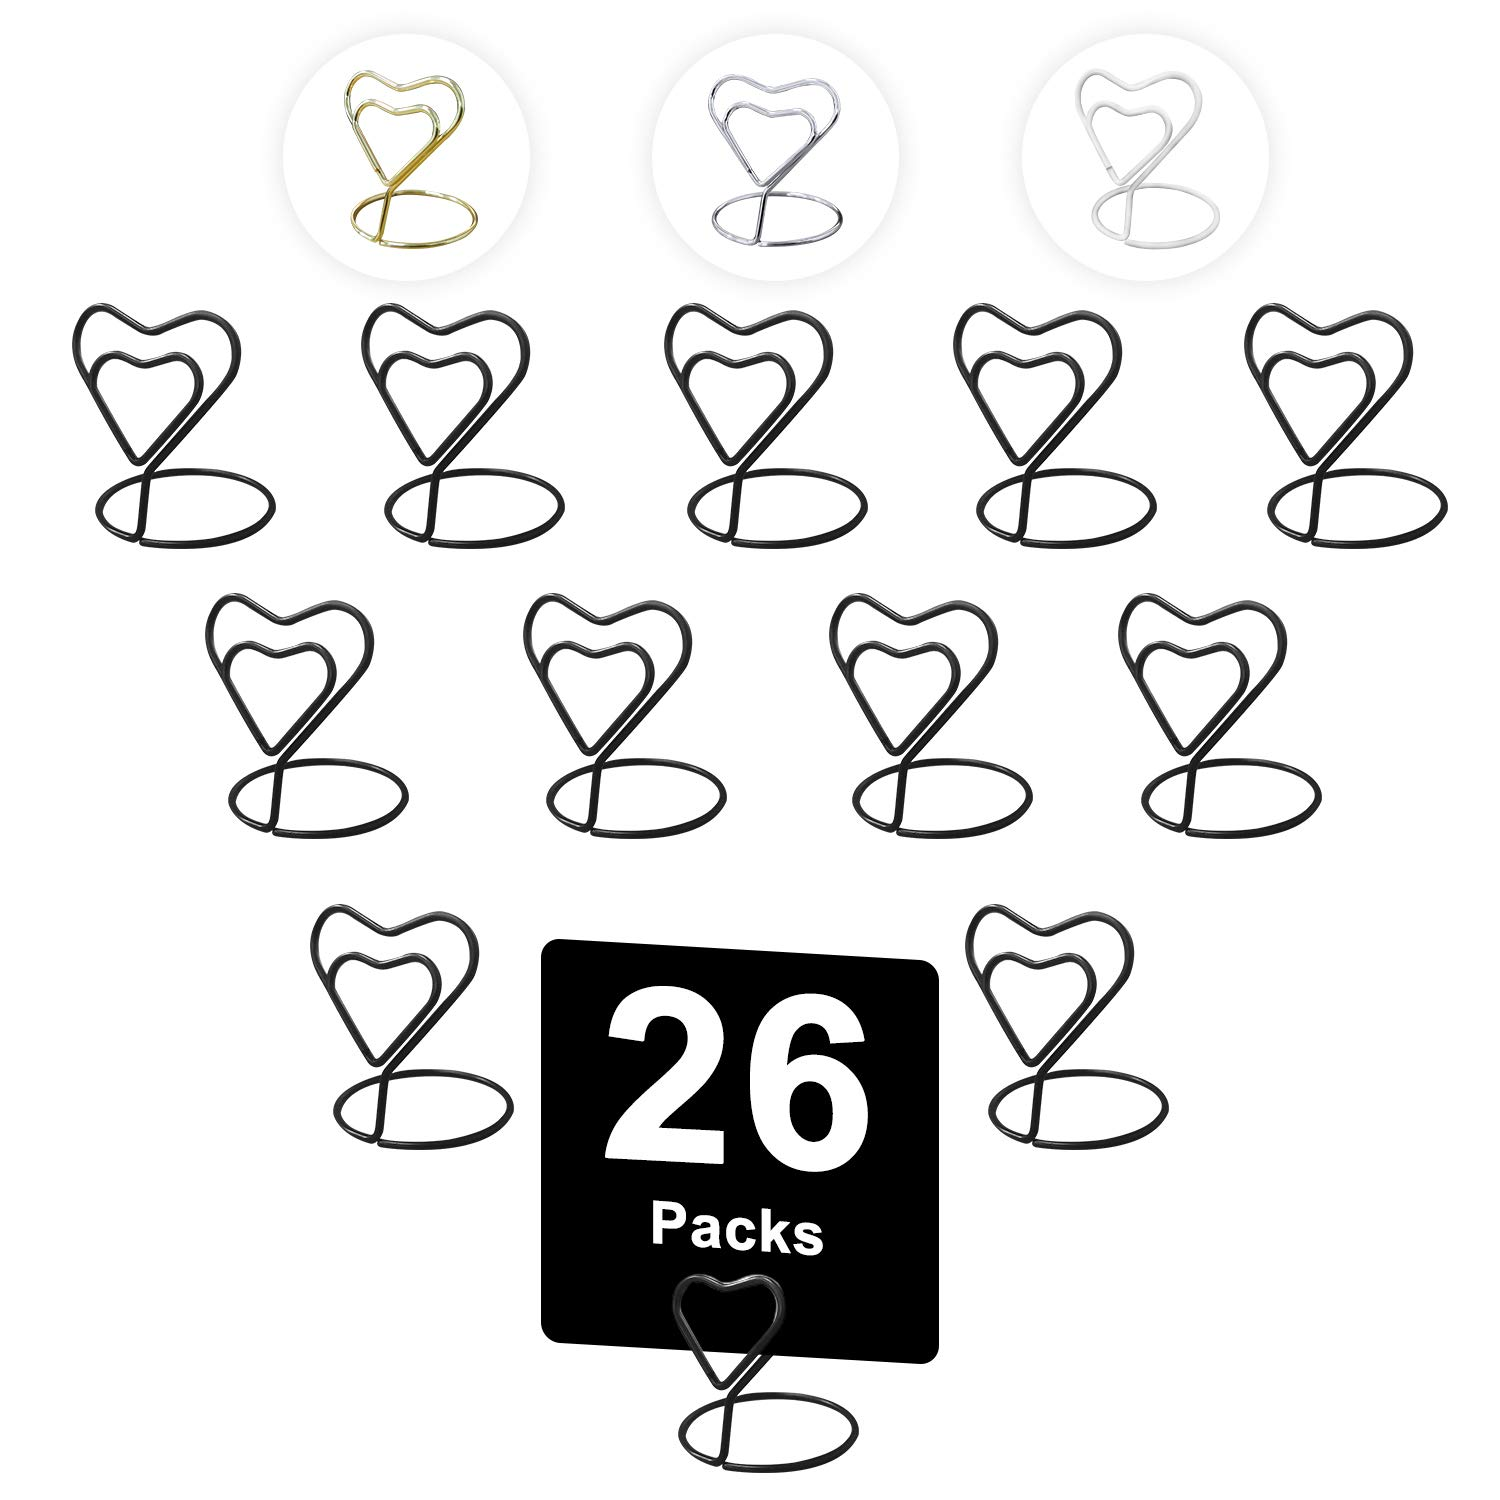 Urban Deco 26 Pieces Wire Place Table Card Holder Metallic Black Heart Card Holders for Photos, Food Signs, Memo Notes, Weddings, Restaurants, Birthdays.